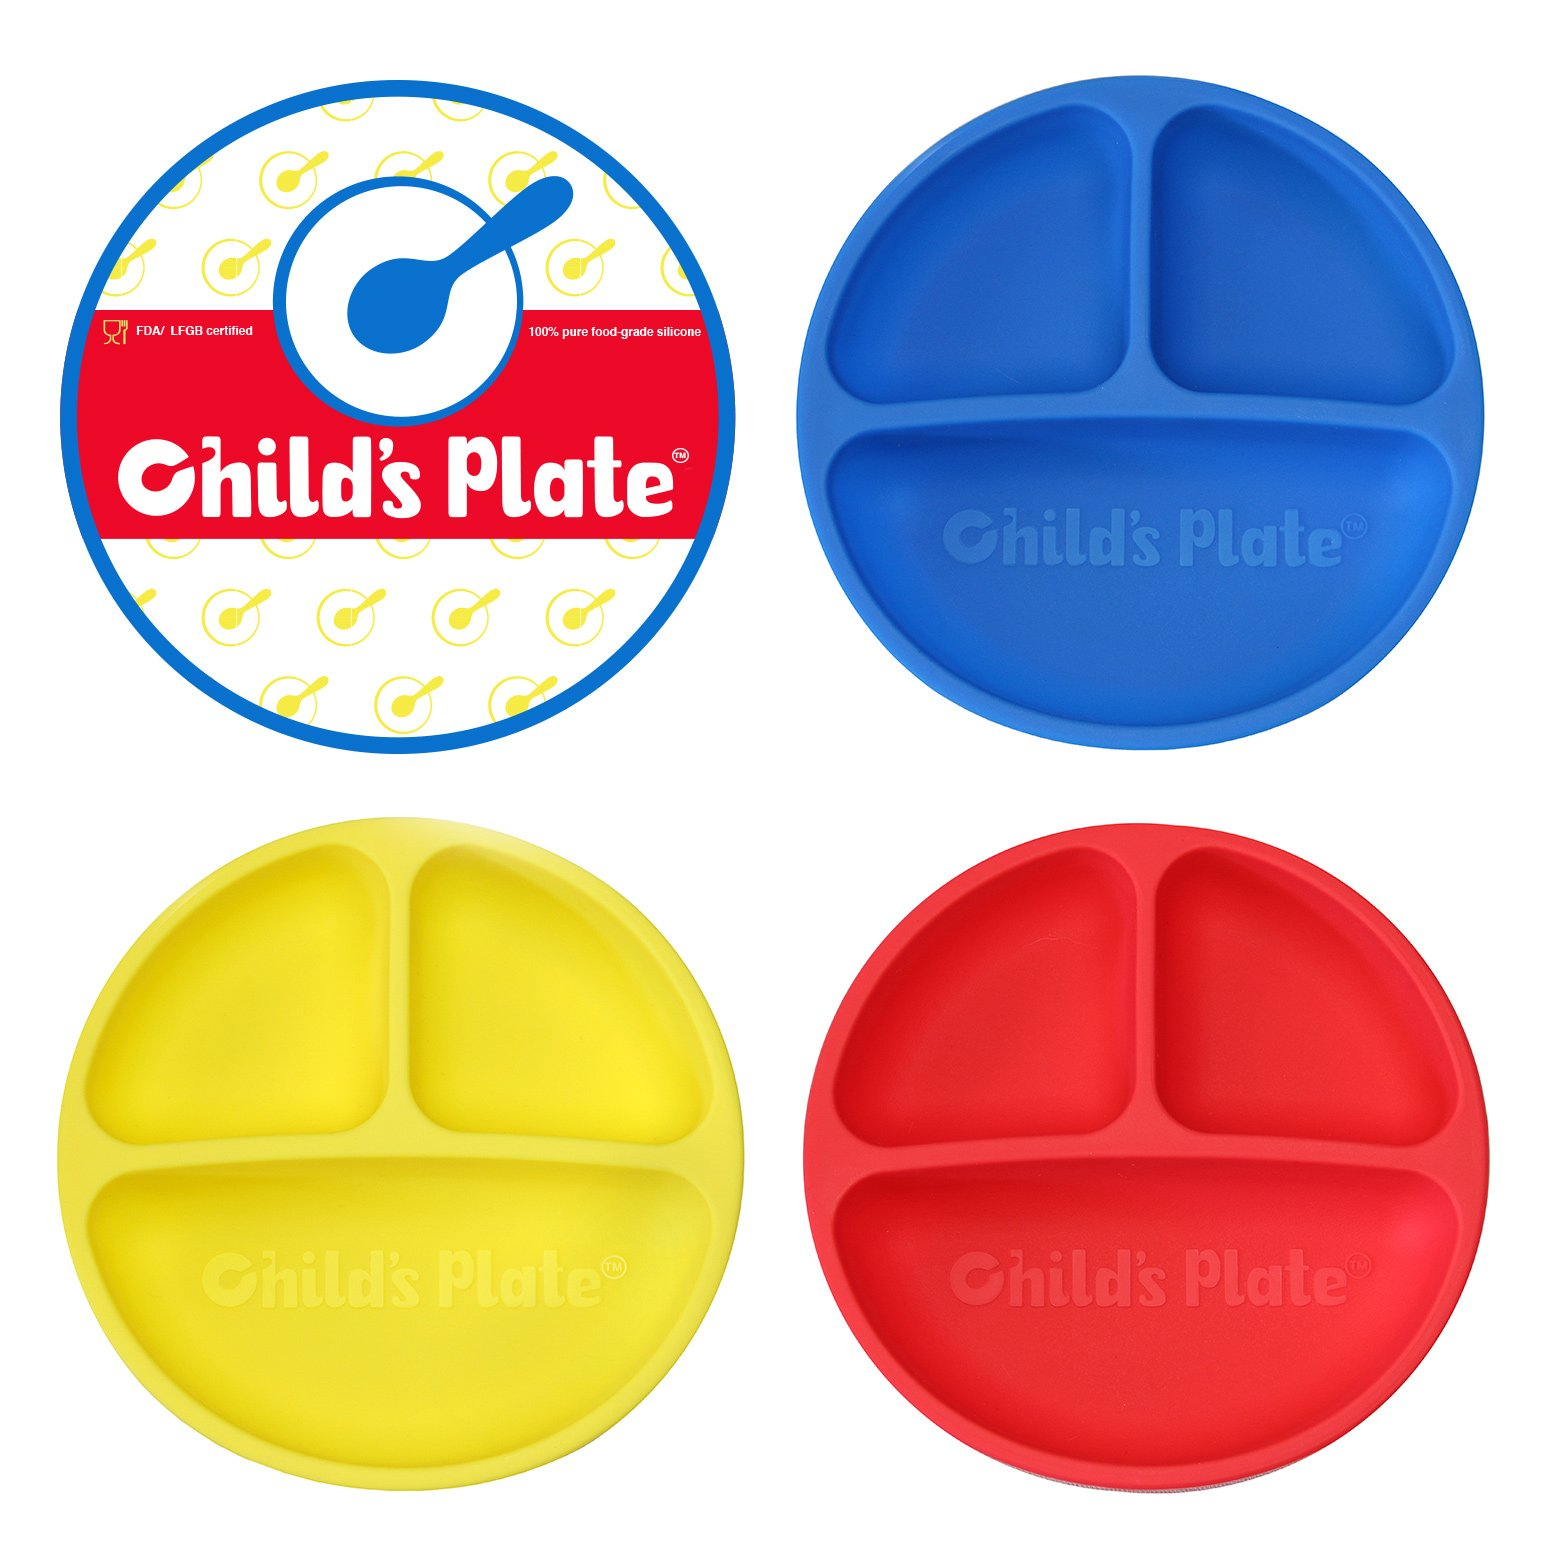 Baby / Toddler Divided Plate Microwave Safe 100% Silicone FDA Certified BPA Free 3 Pack